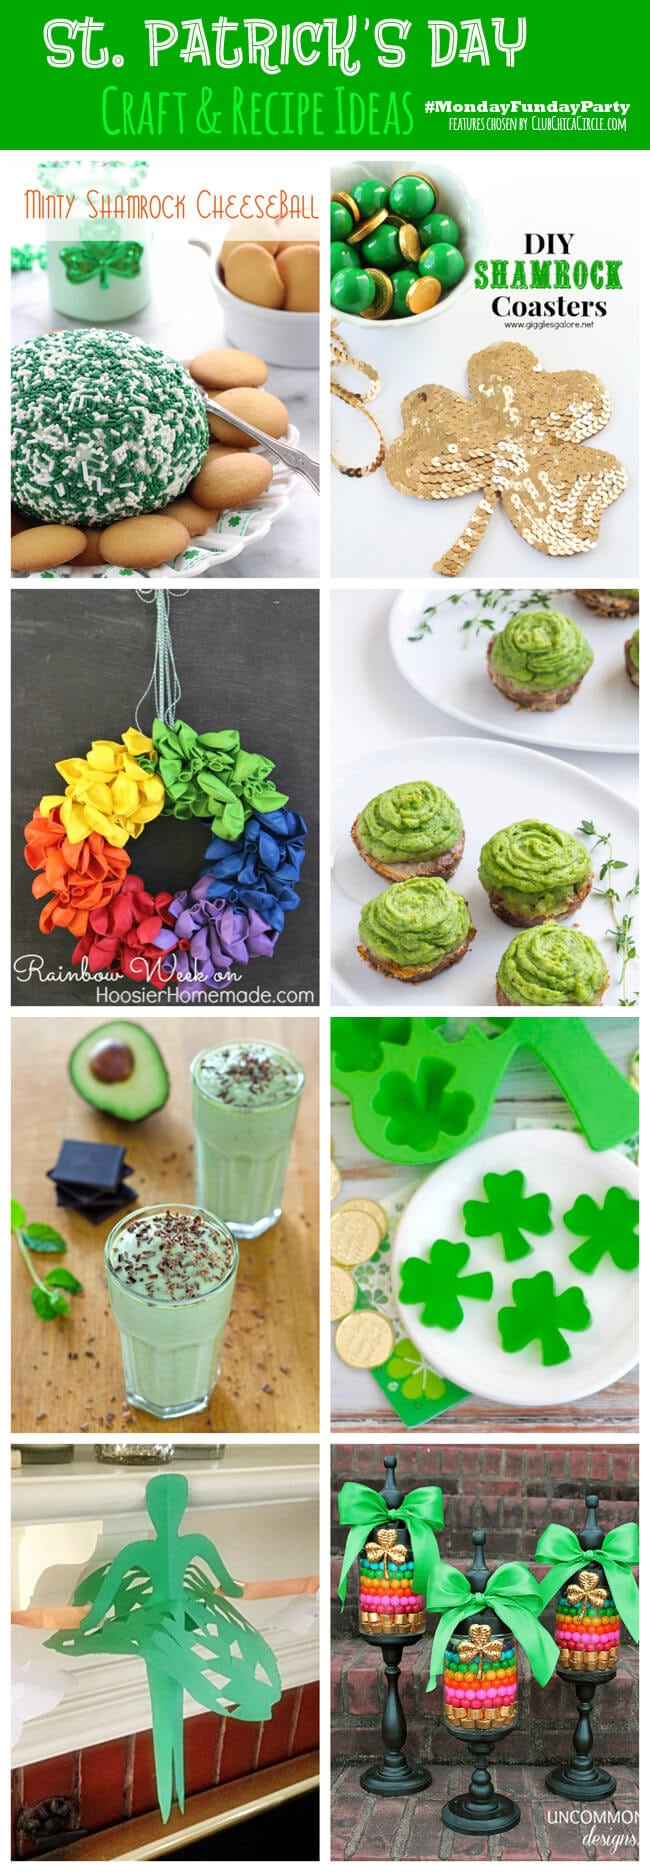 8 St. Patricks Day Crafts & Recipes